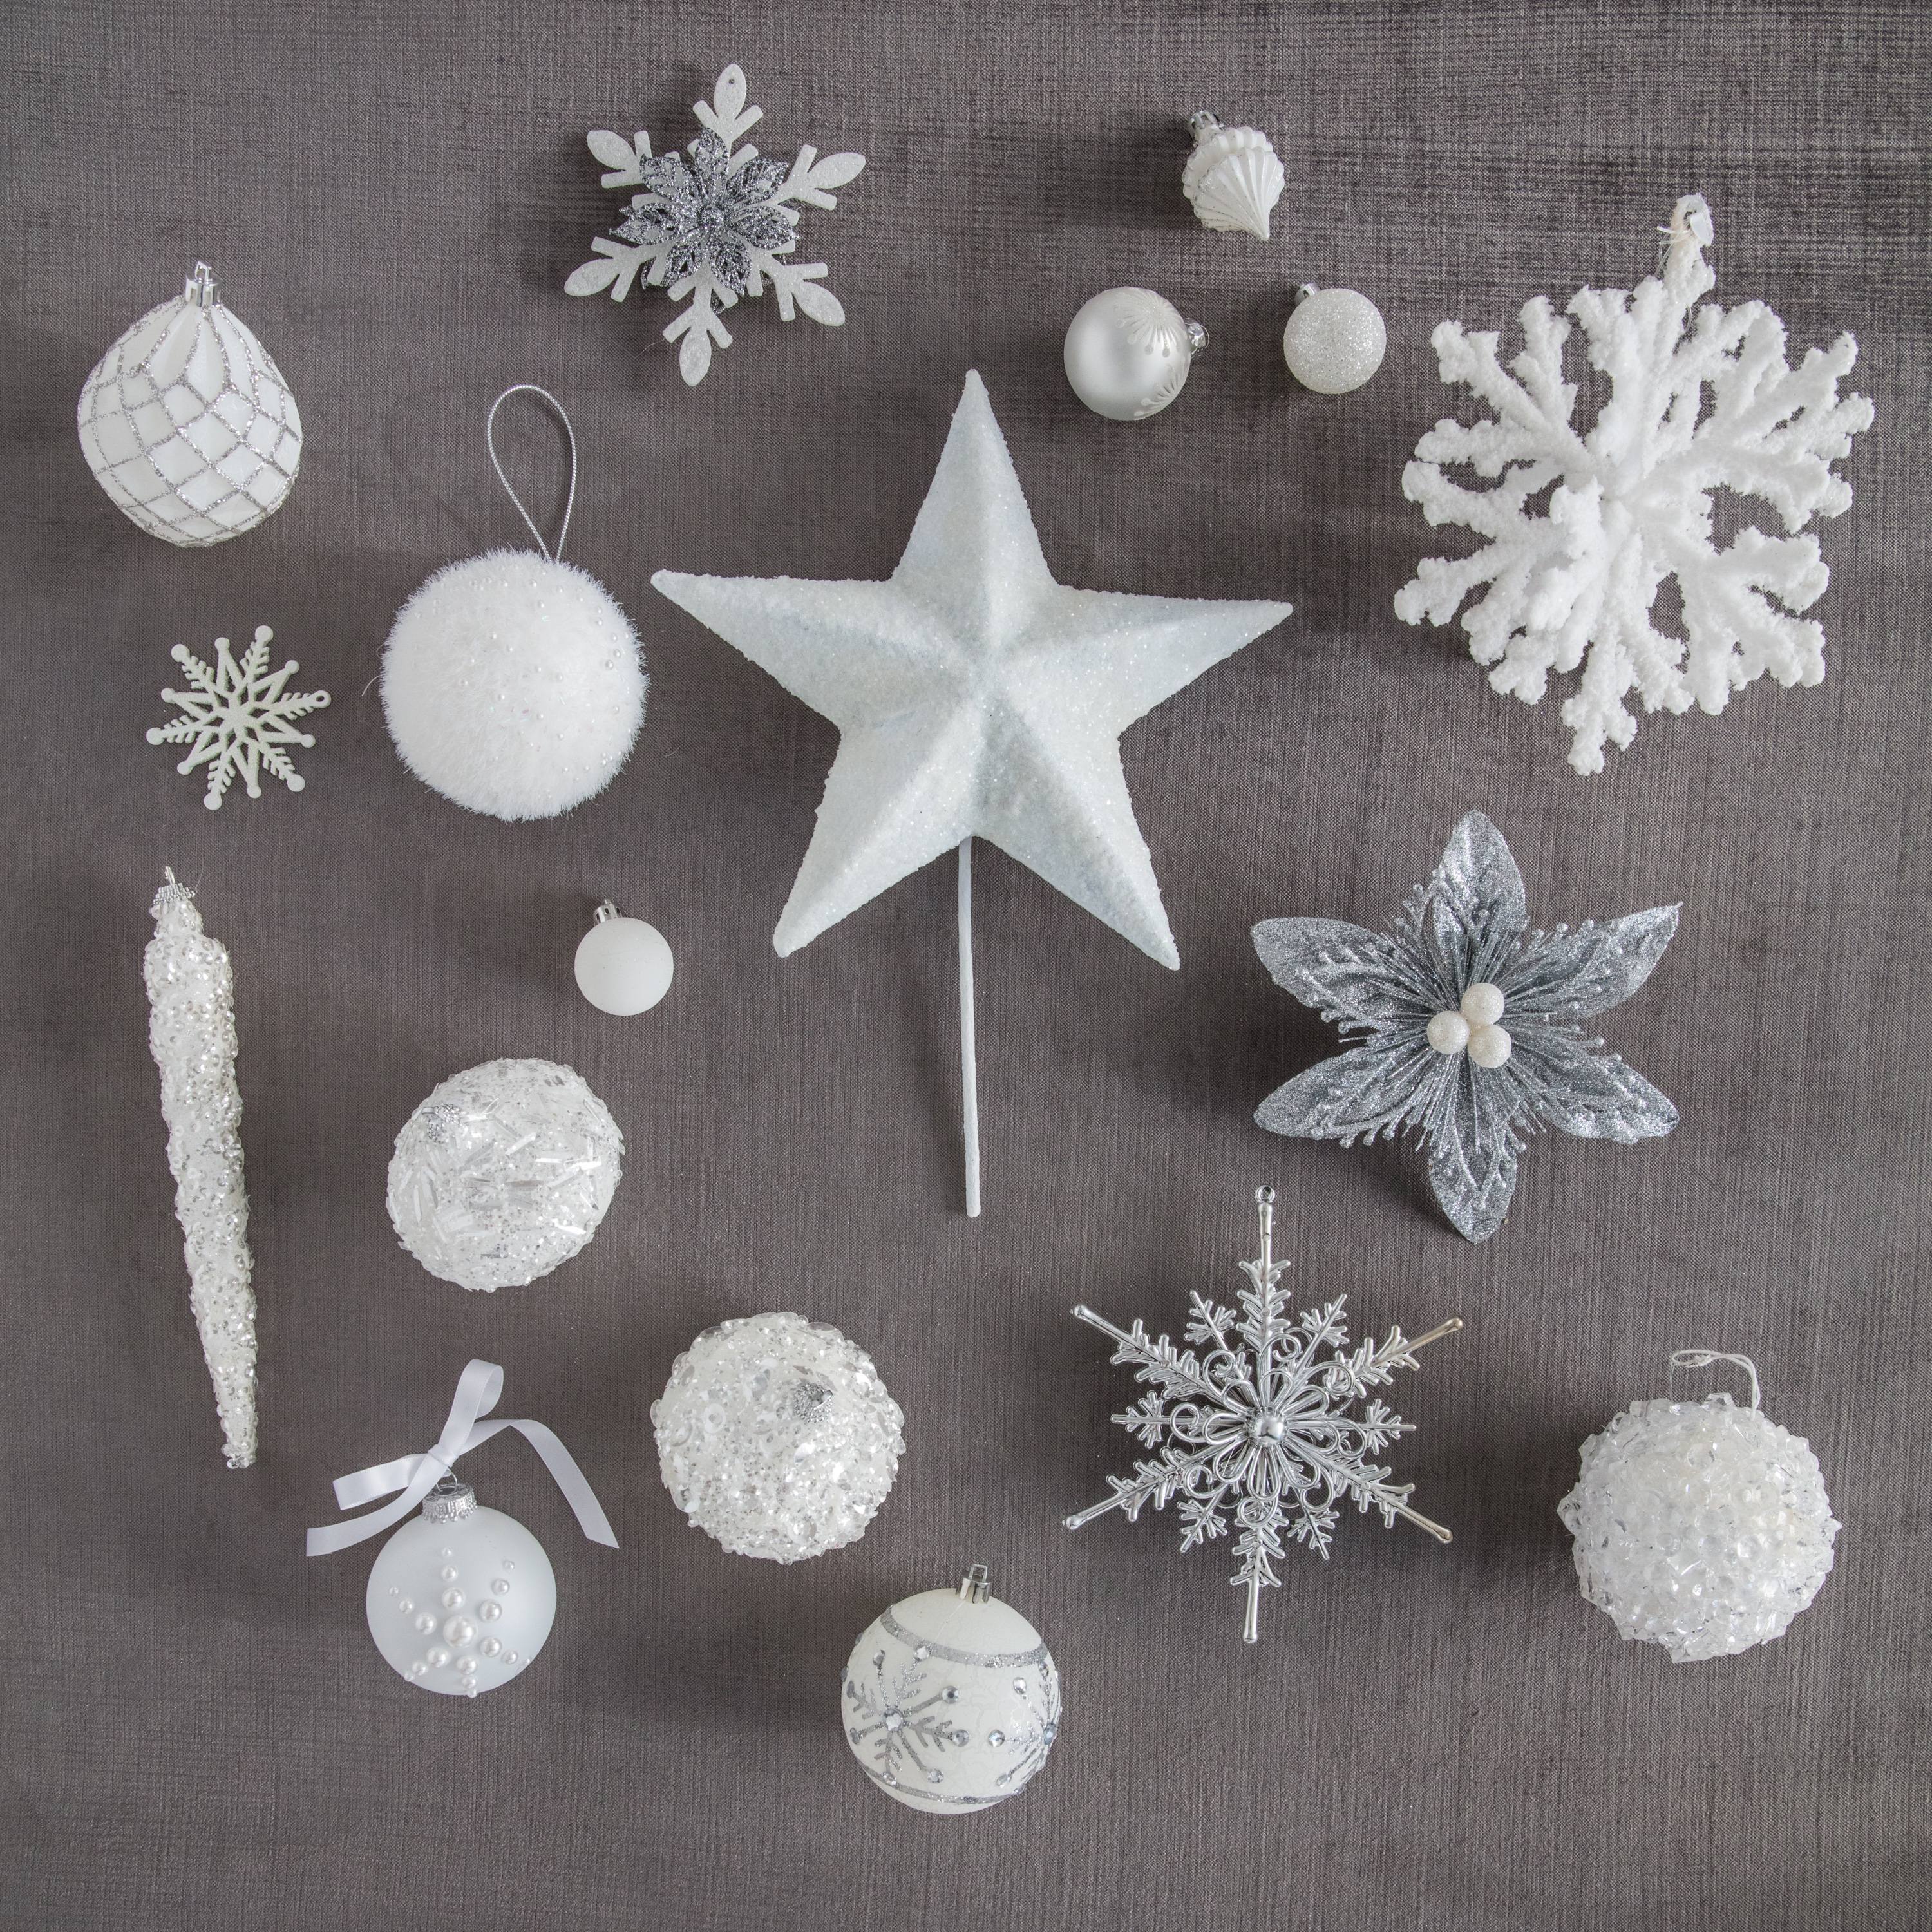 Black And White Christmas.10 Ways To Have A White Christmas Without The Snow